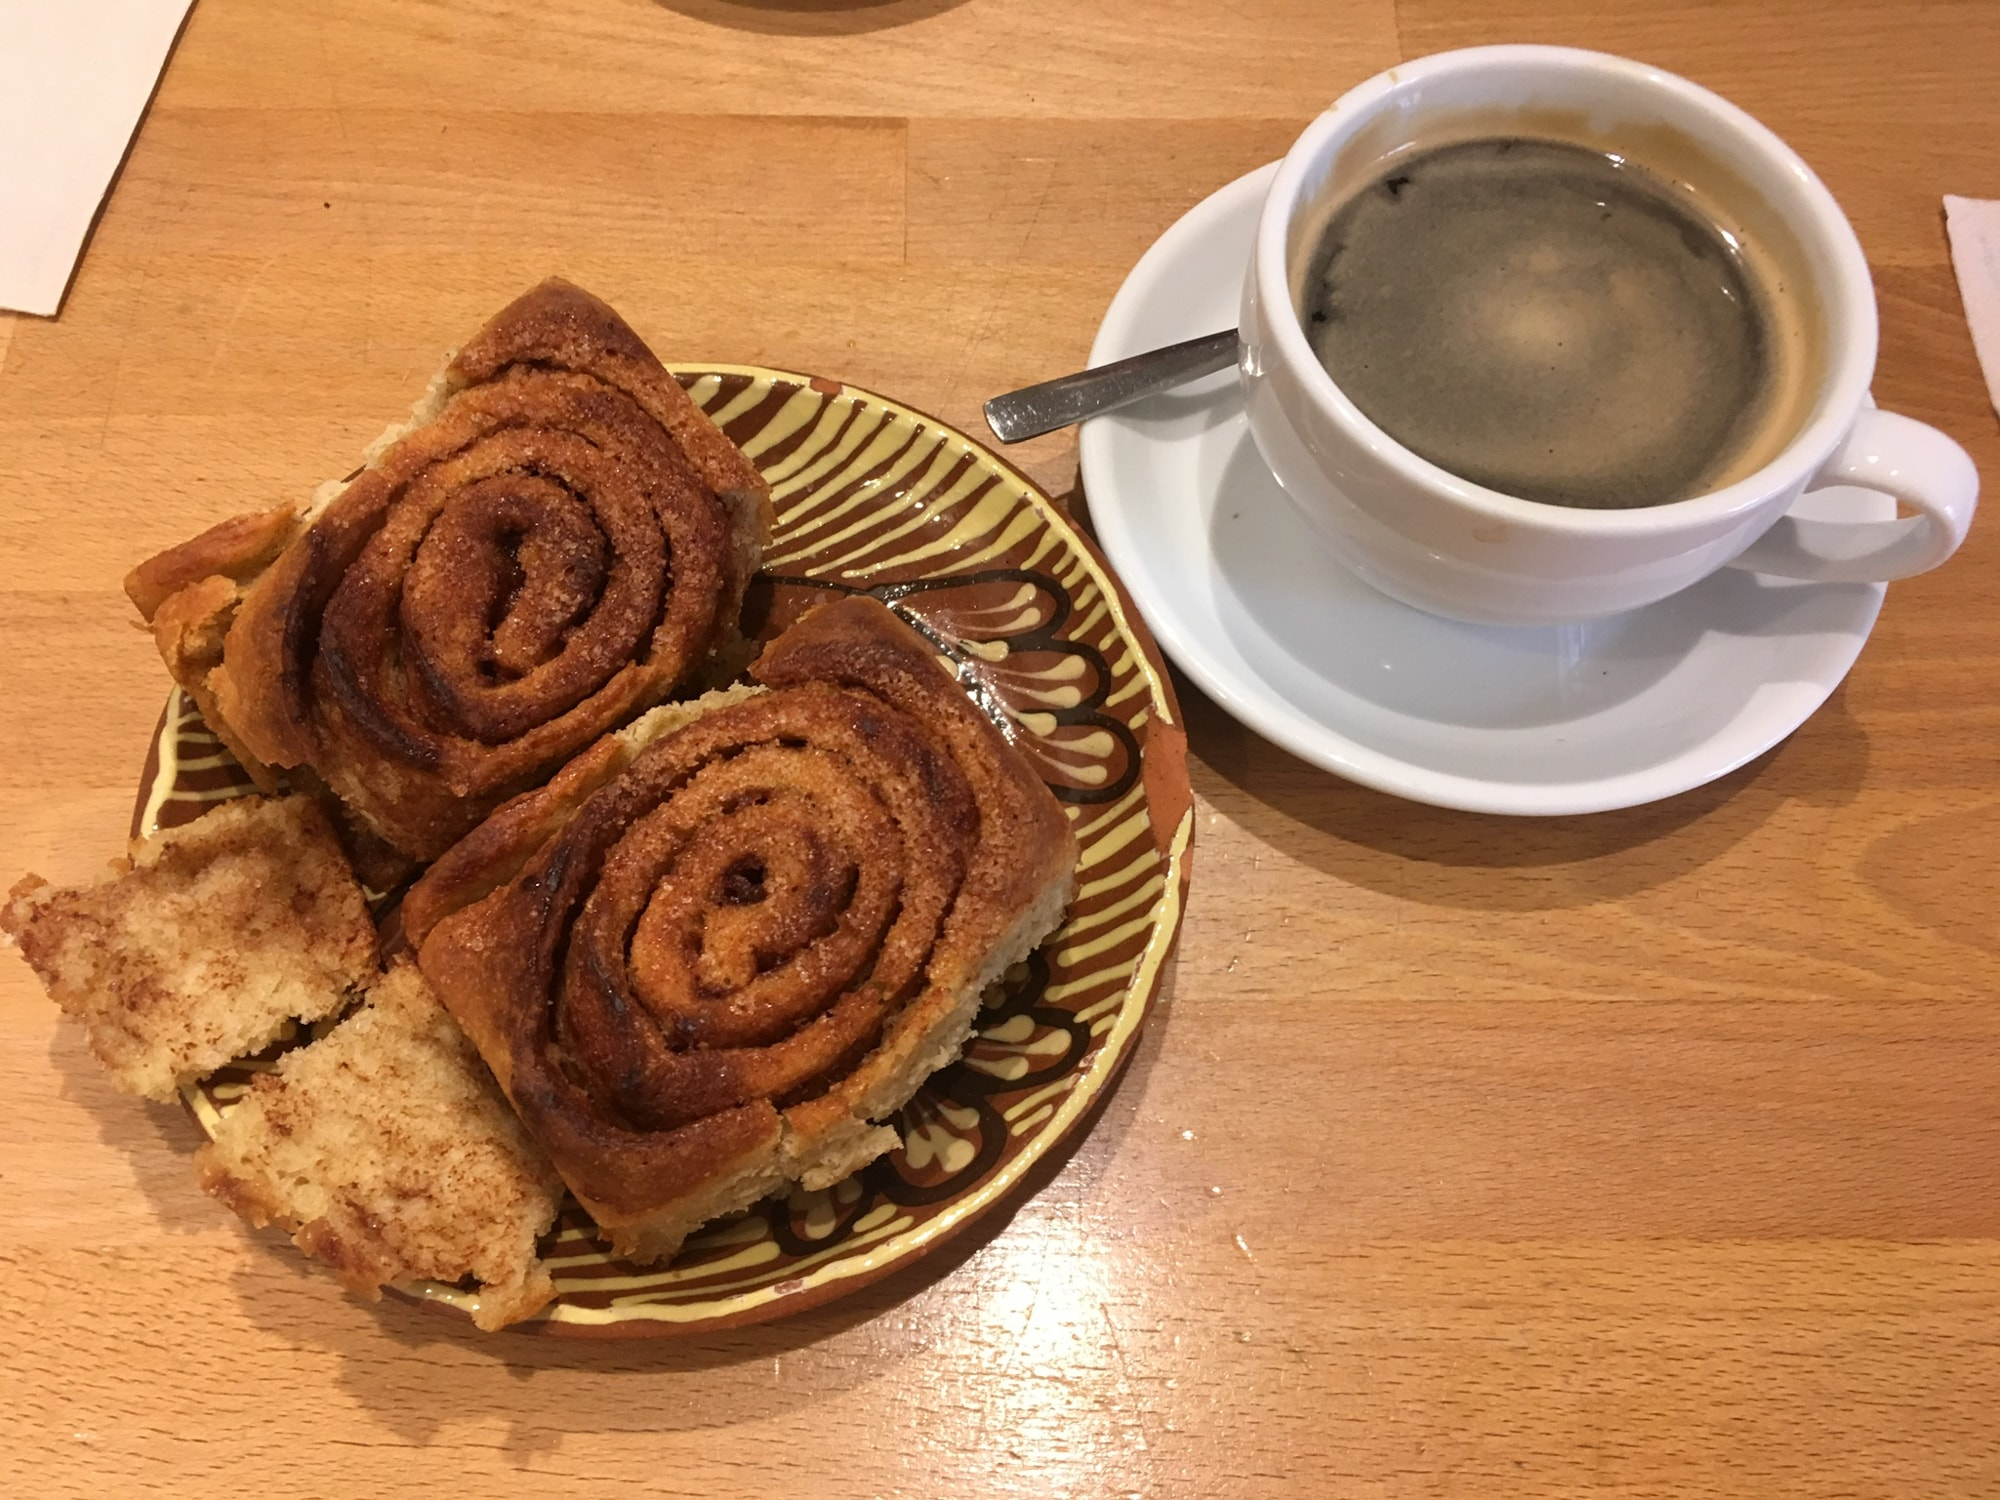 Vegan cinammon swirl in Goodies, Warschauer Strasse, Berlin